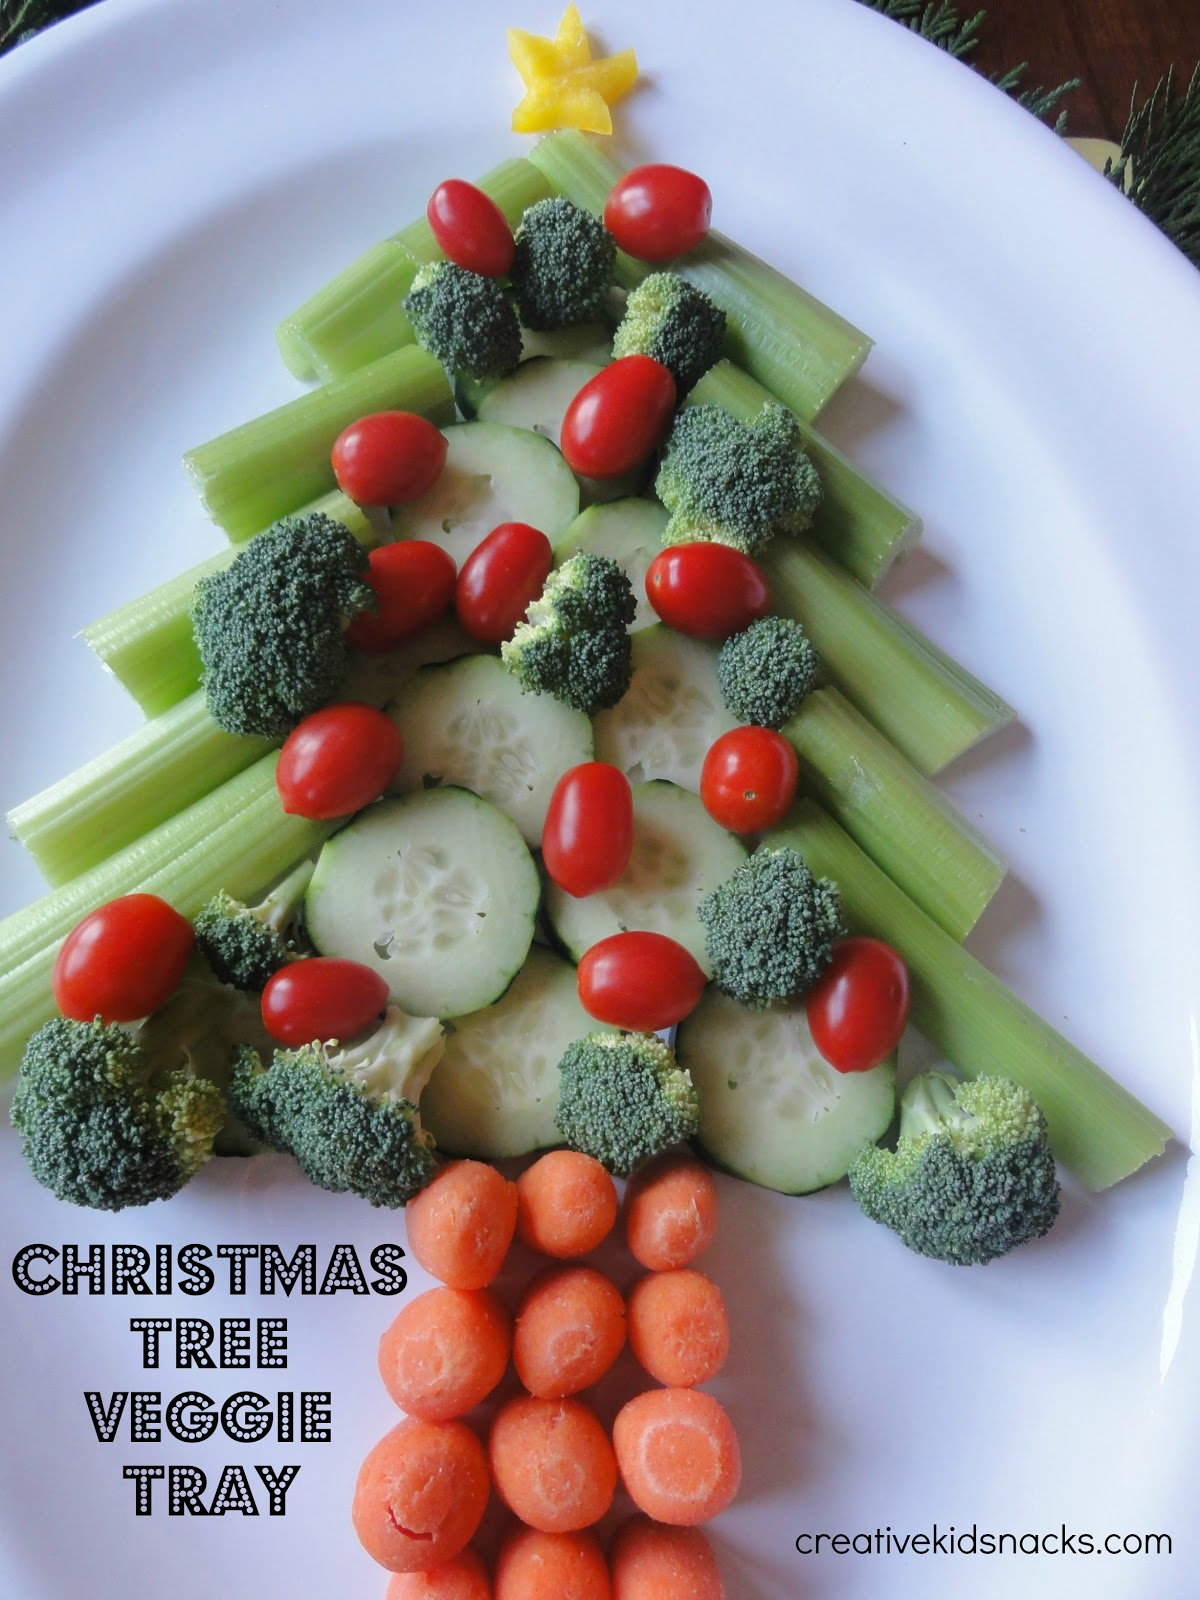 Try this fun and popular idea with the kids this year